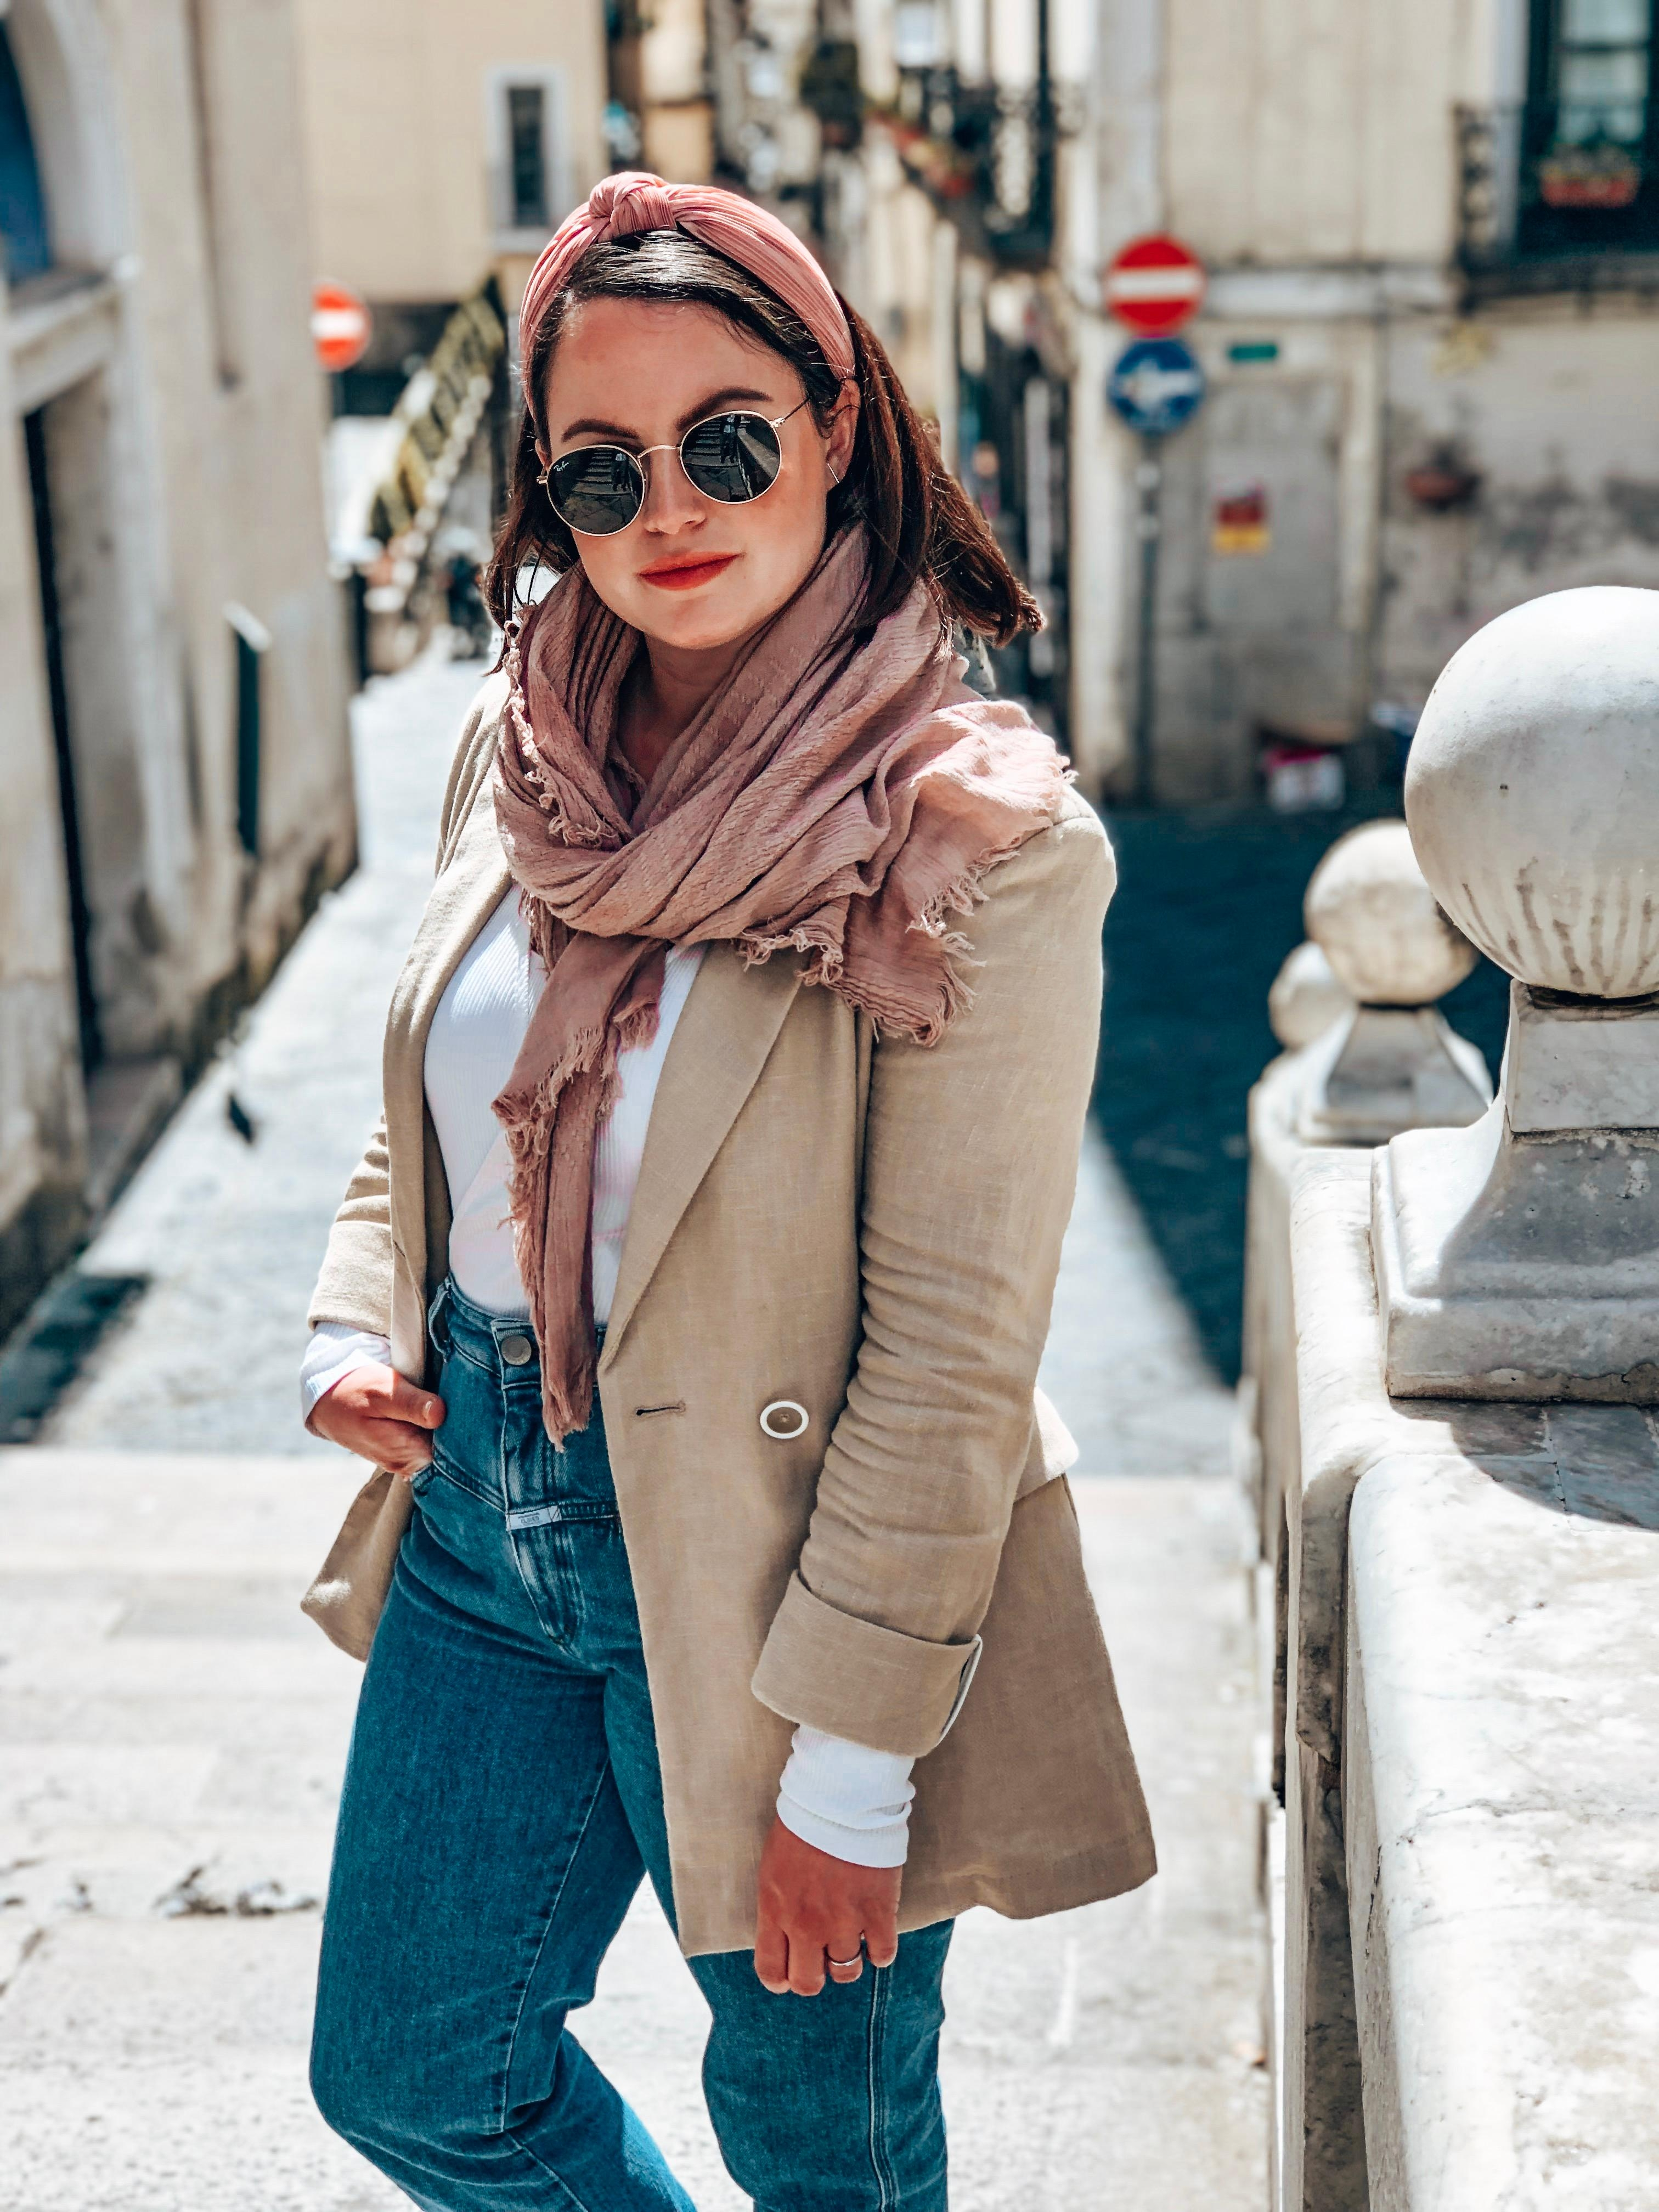 In the Streets of Italy